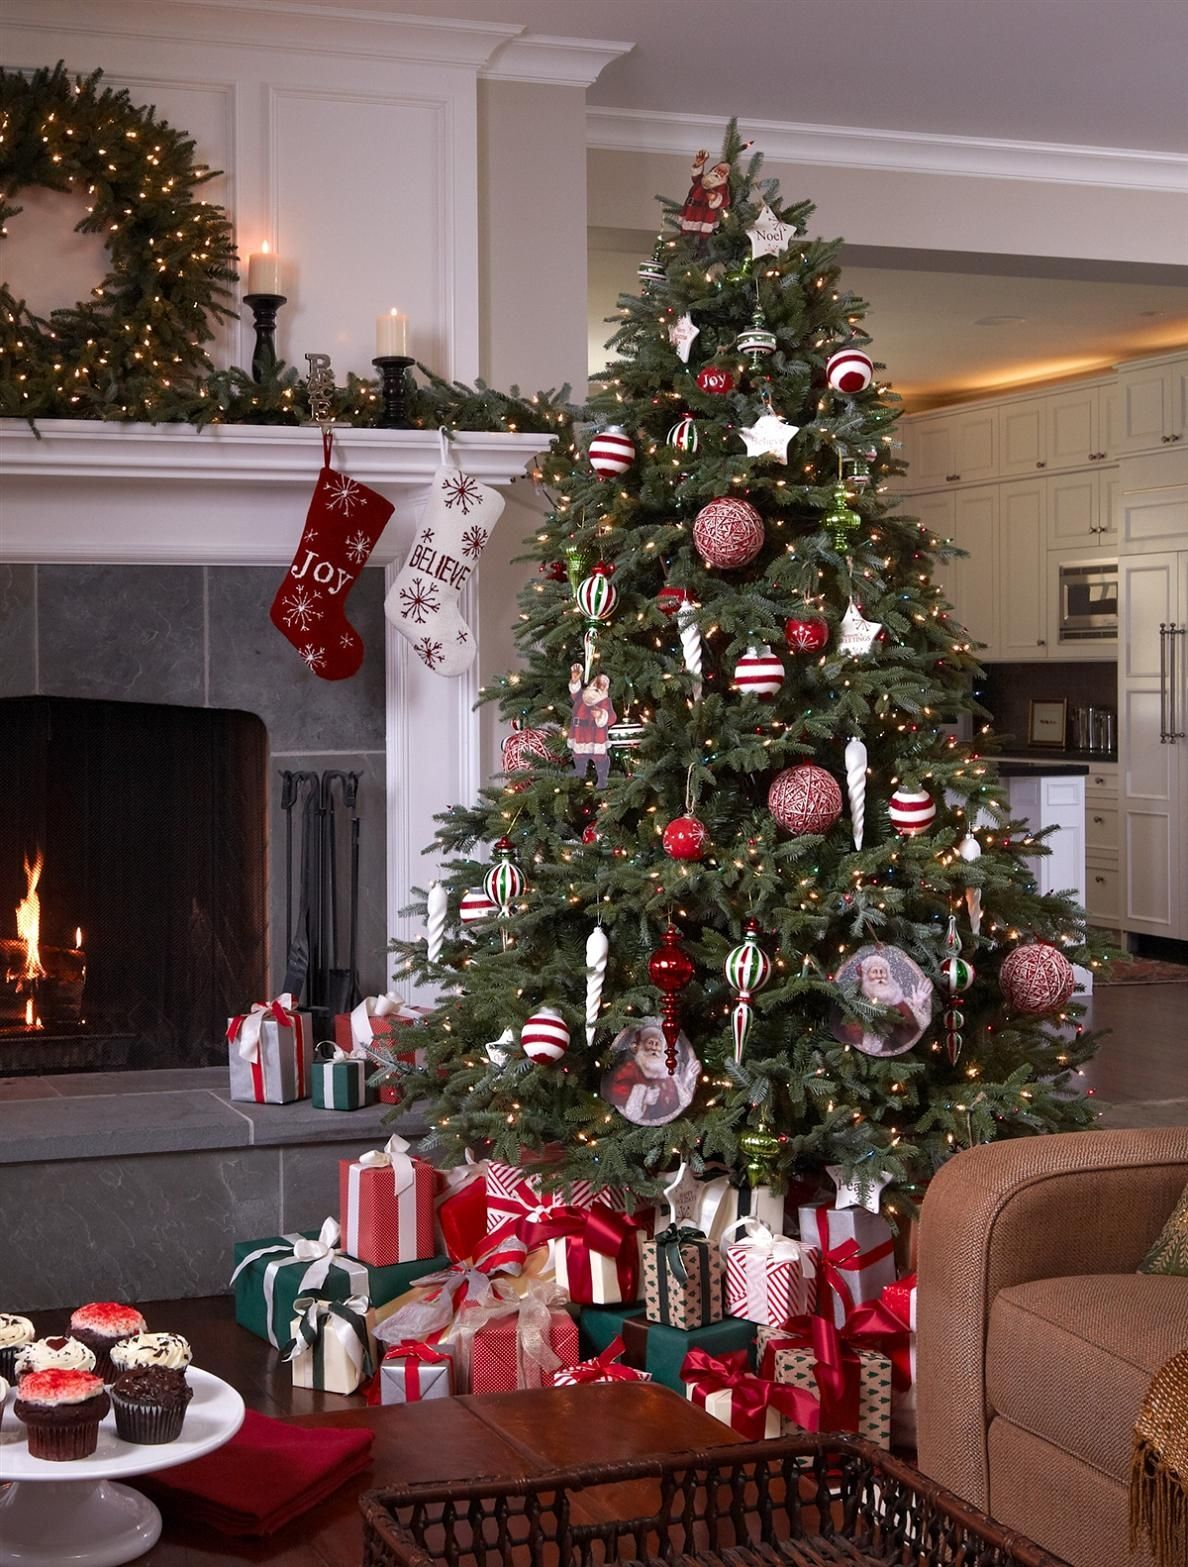 A Fraser Fir Christmas tree beautifully decorated with a red and white color theme